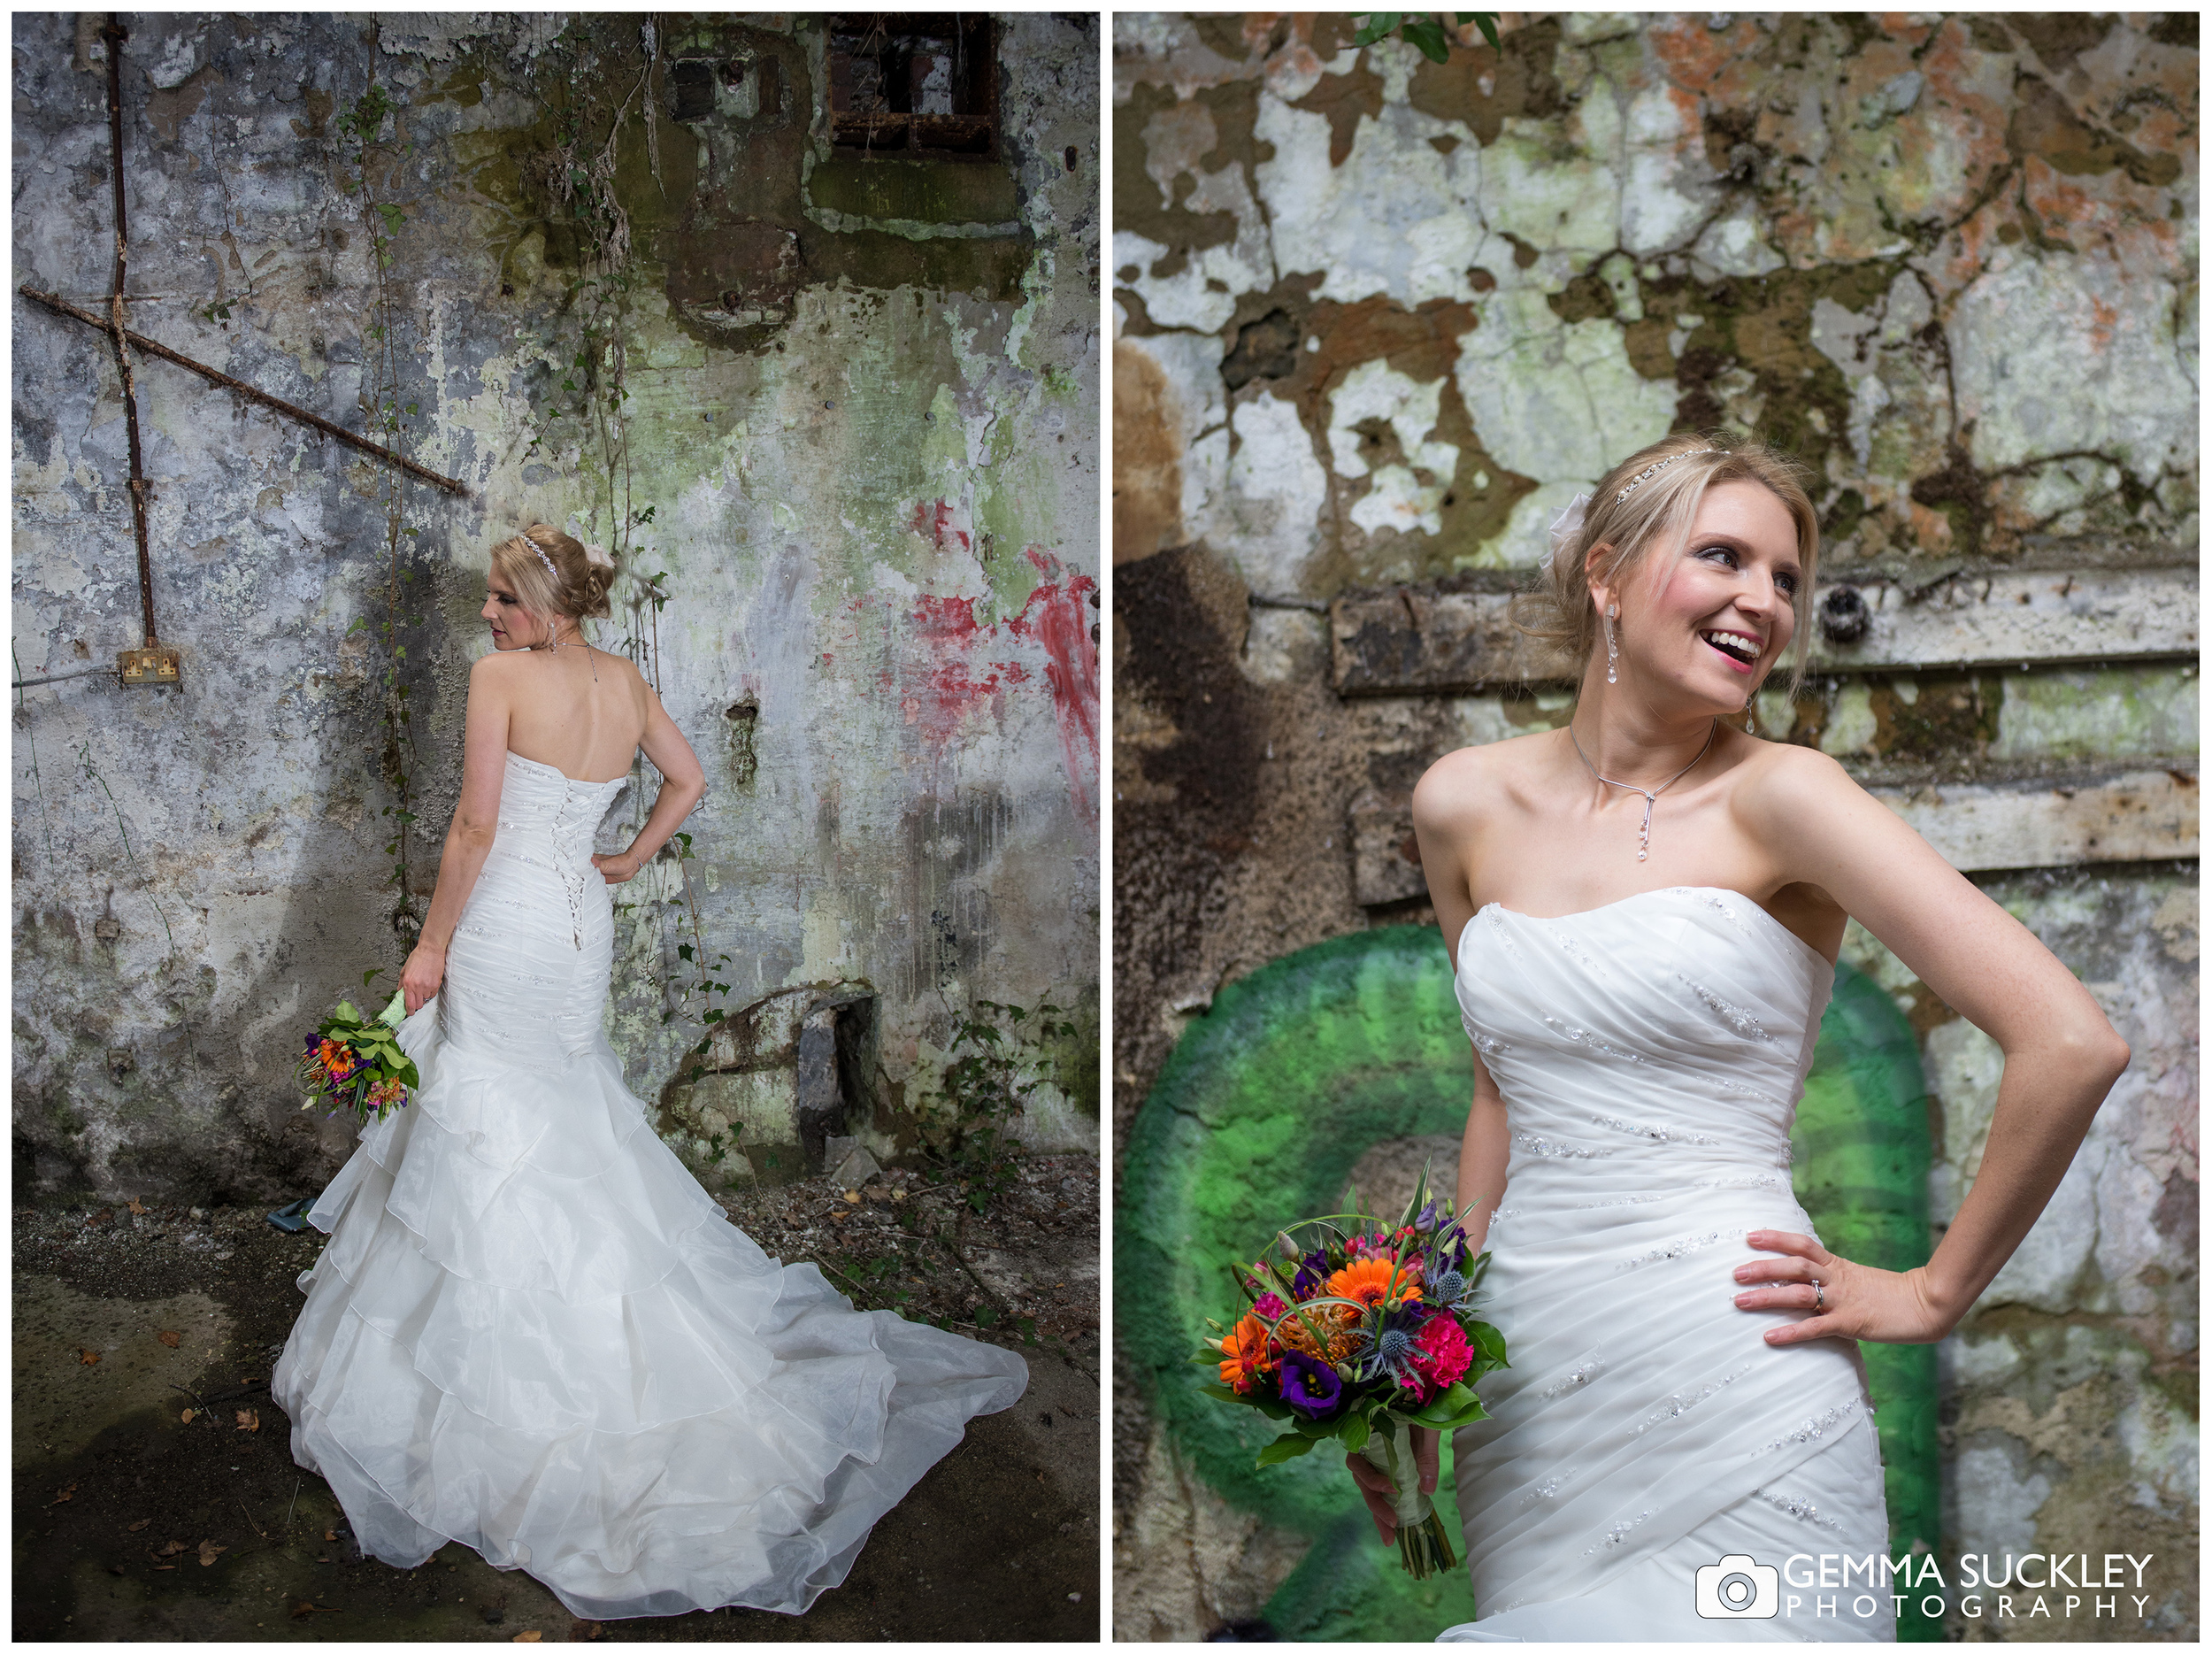 bridal-photo-shoot-in-abandoned-mill.jpg